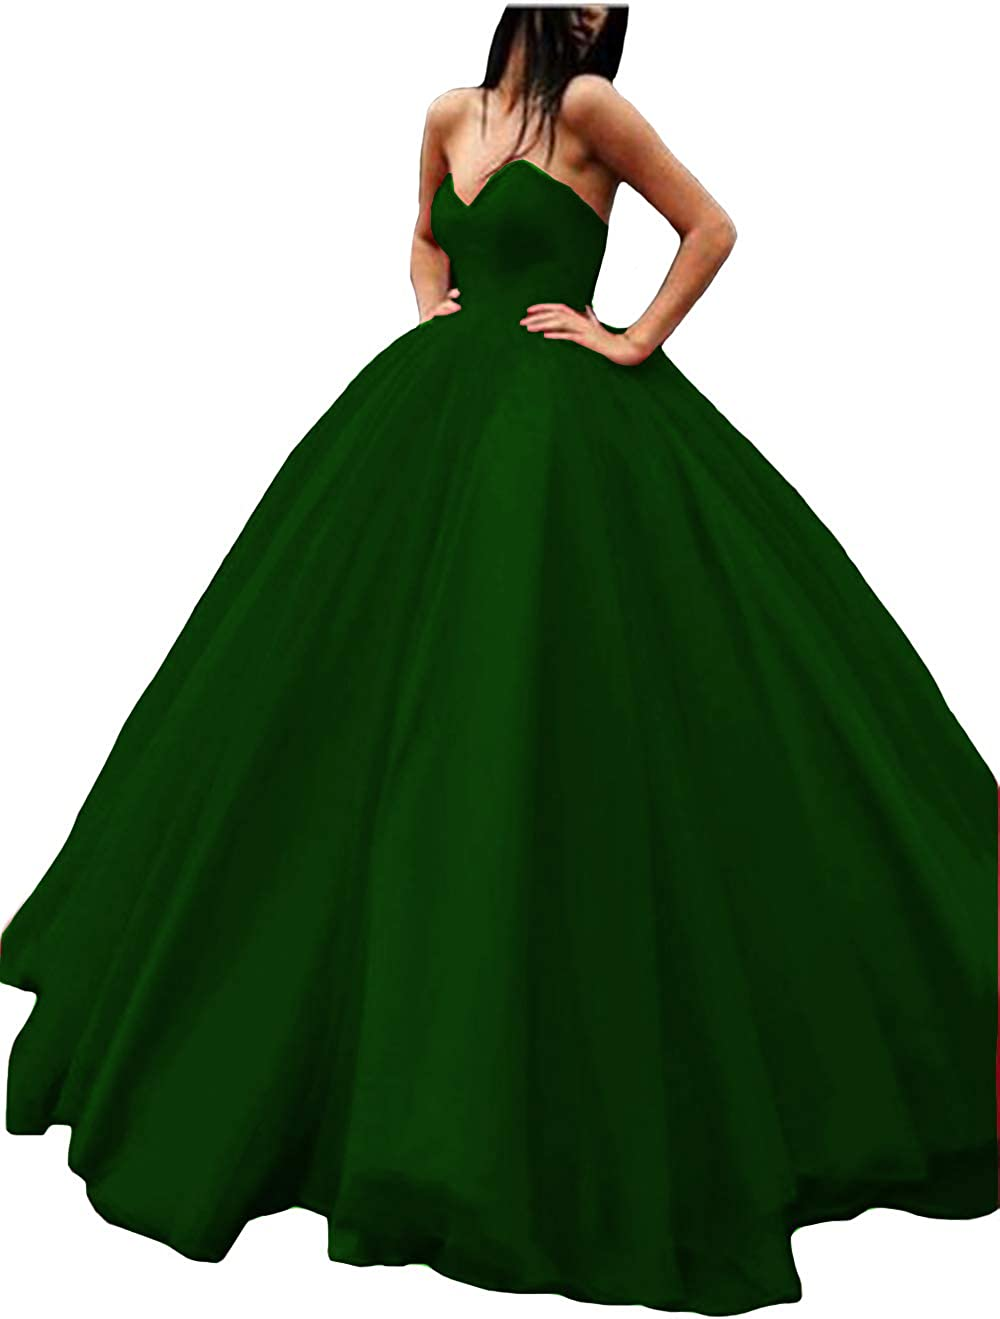 Dark Green IVYPRECIOUS Sweetheart A Line Puffy Prom Dresses Satin with Tulle Long Evening Ball Gown